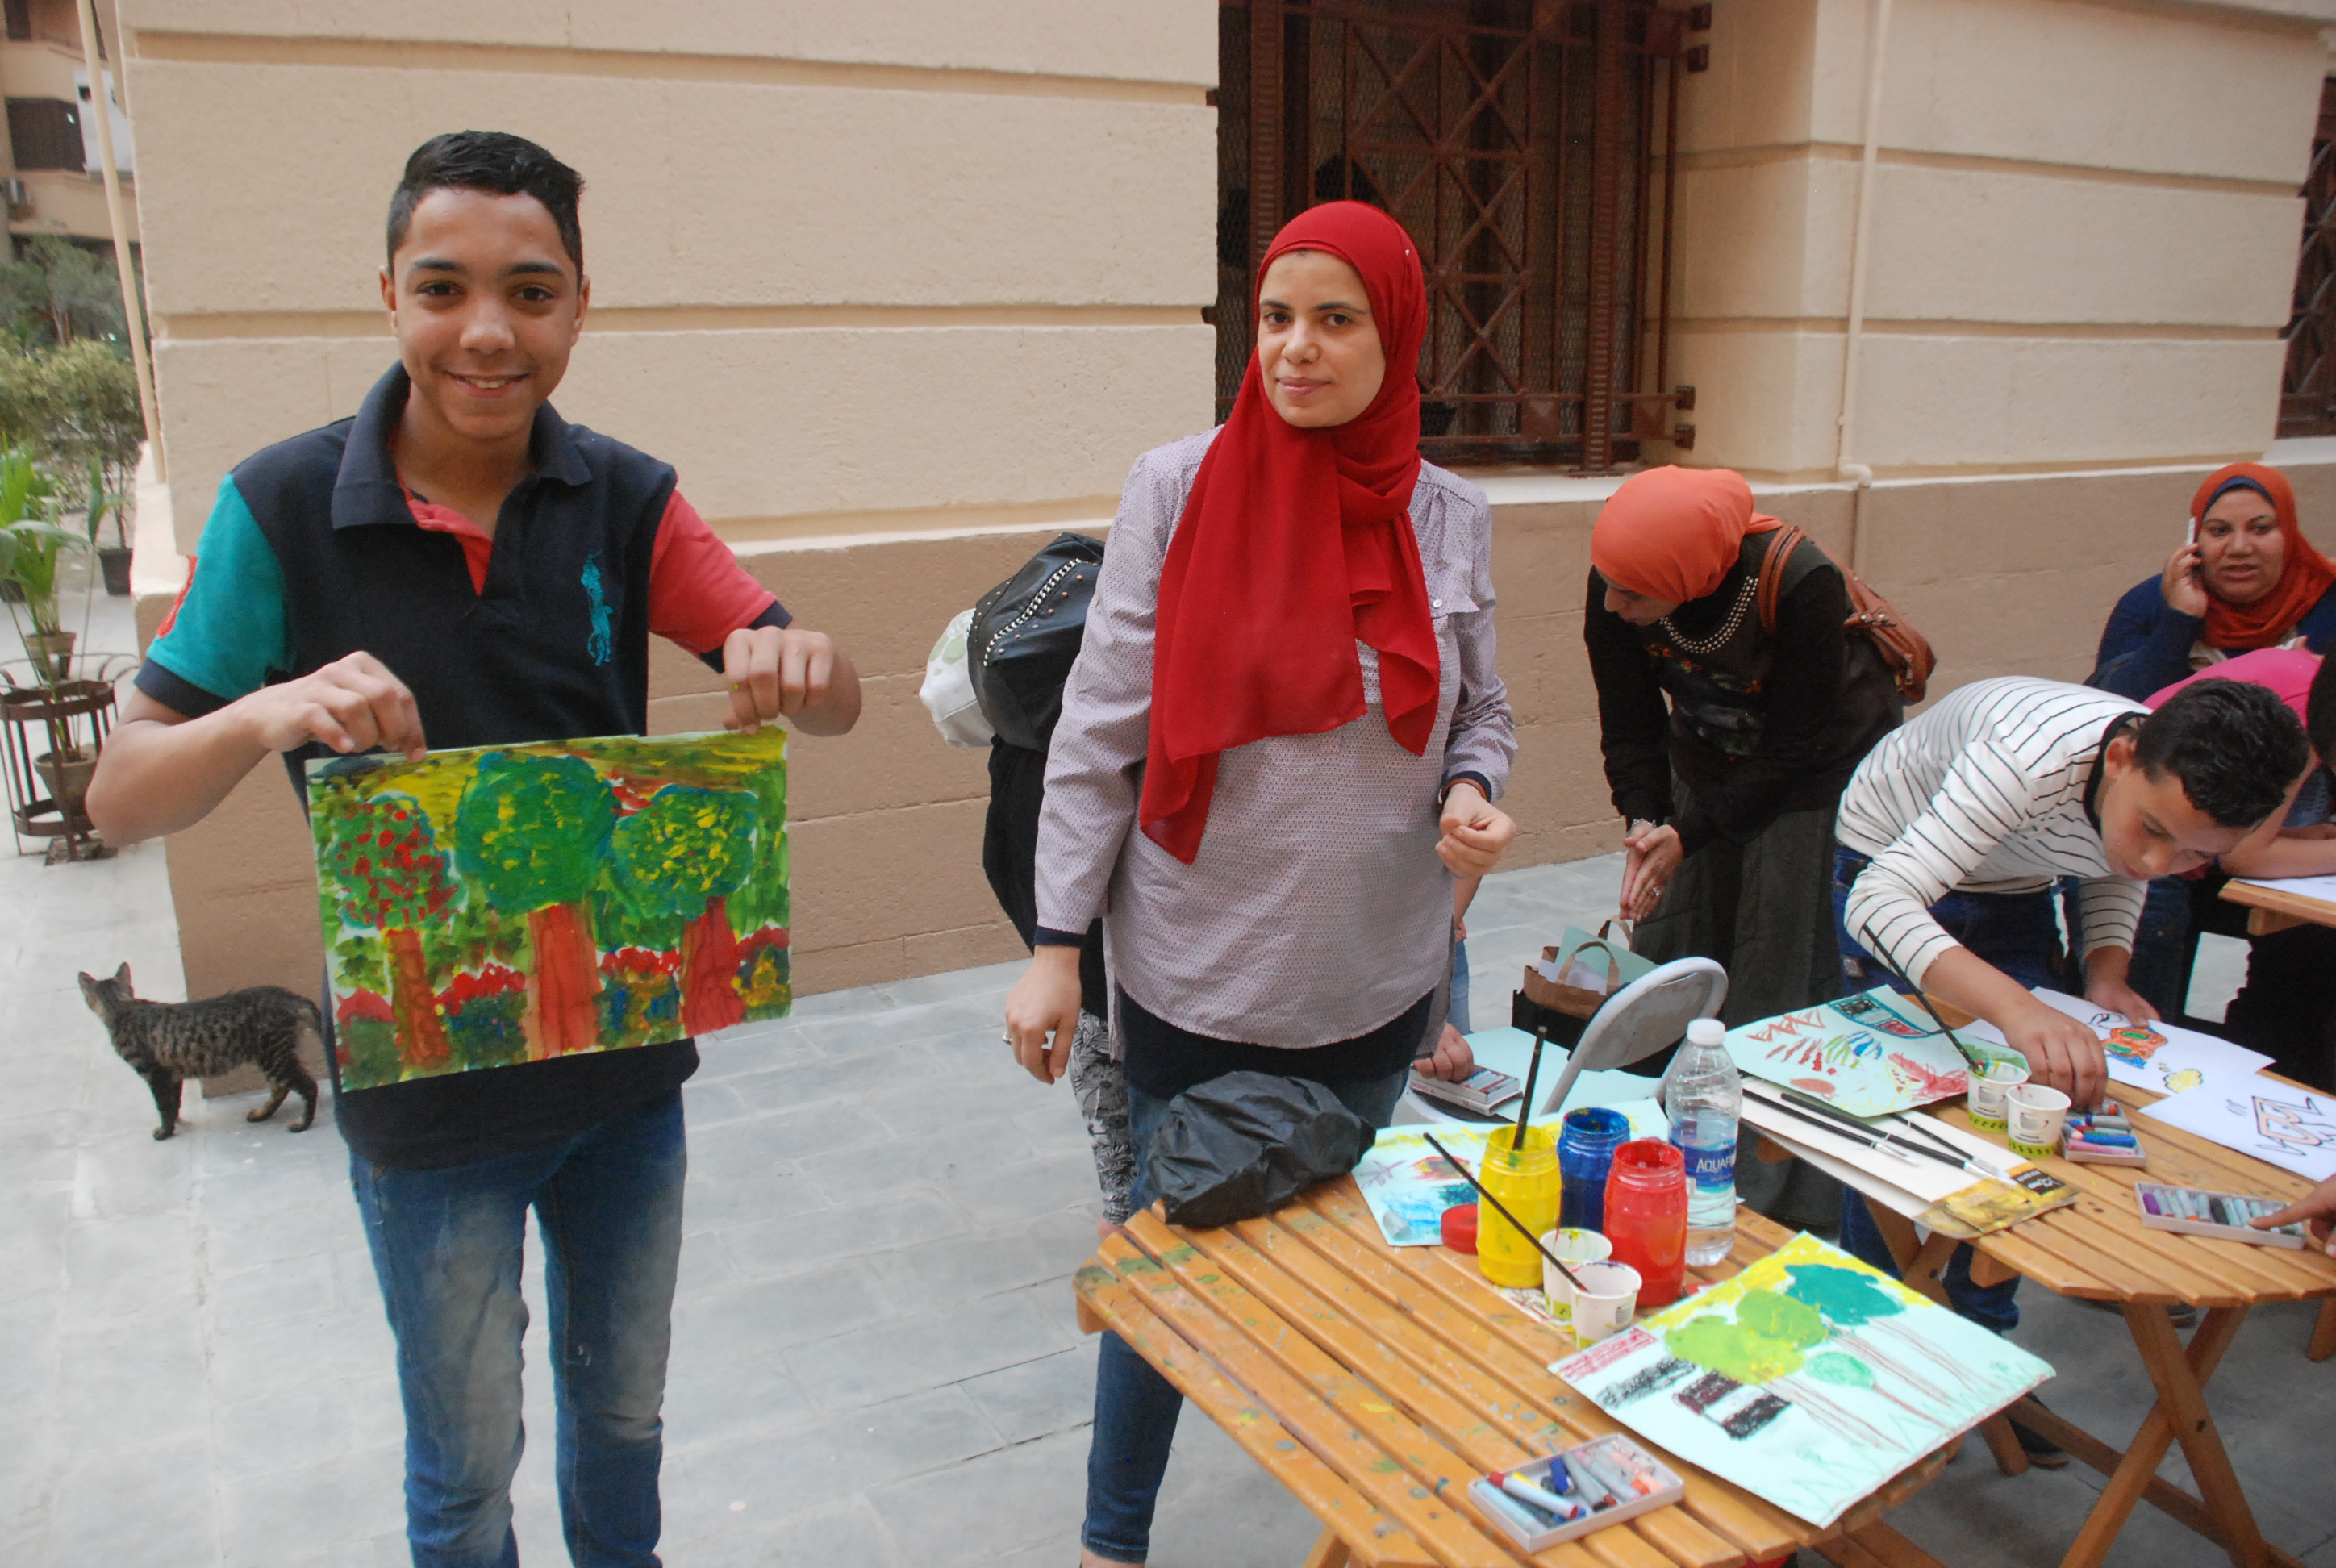 Participants at a workshop for children held in Al Sharifain Street in Cairo. (Amr Emam)